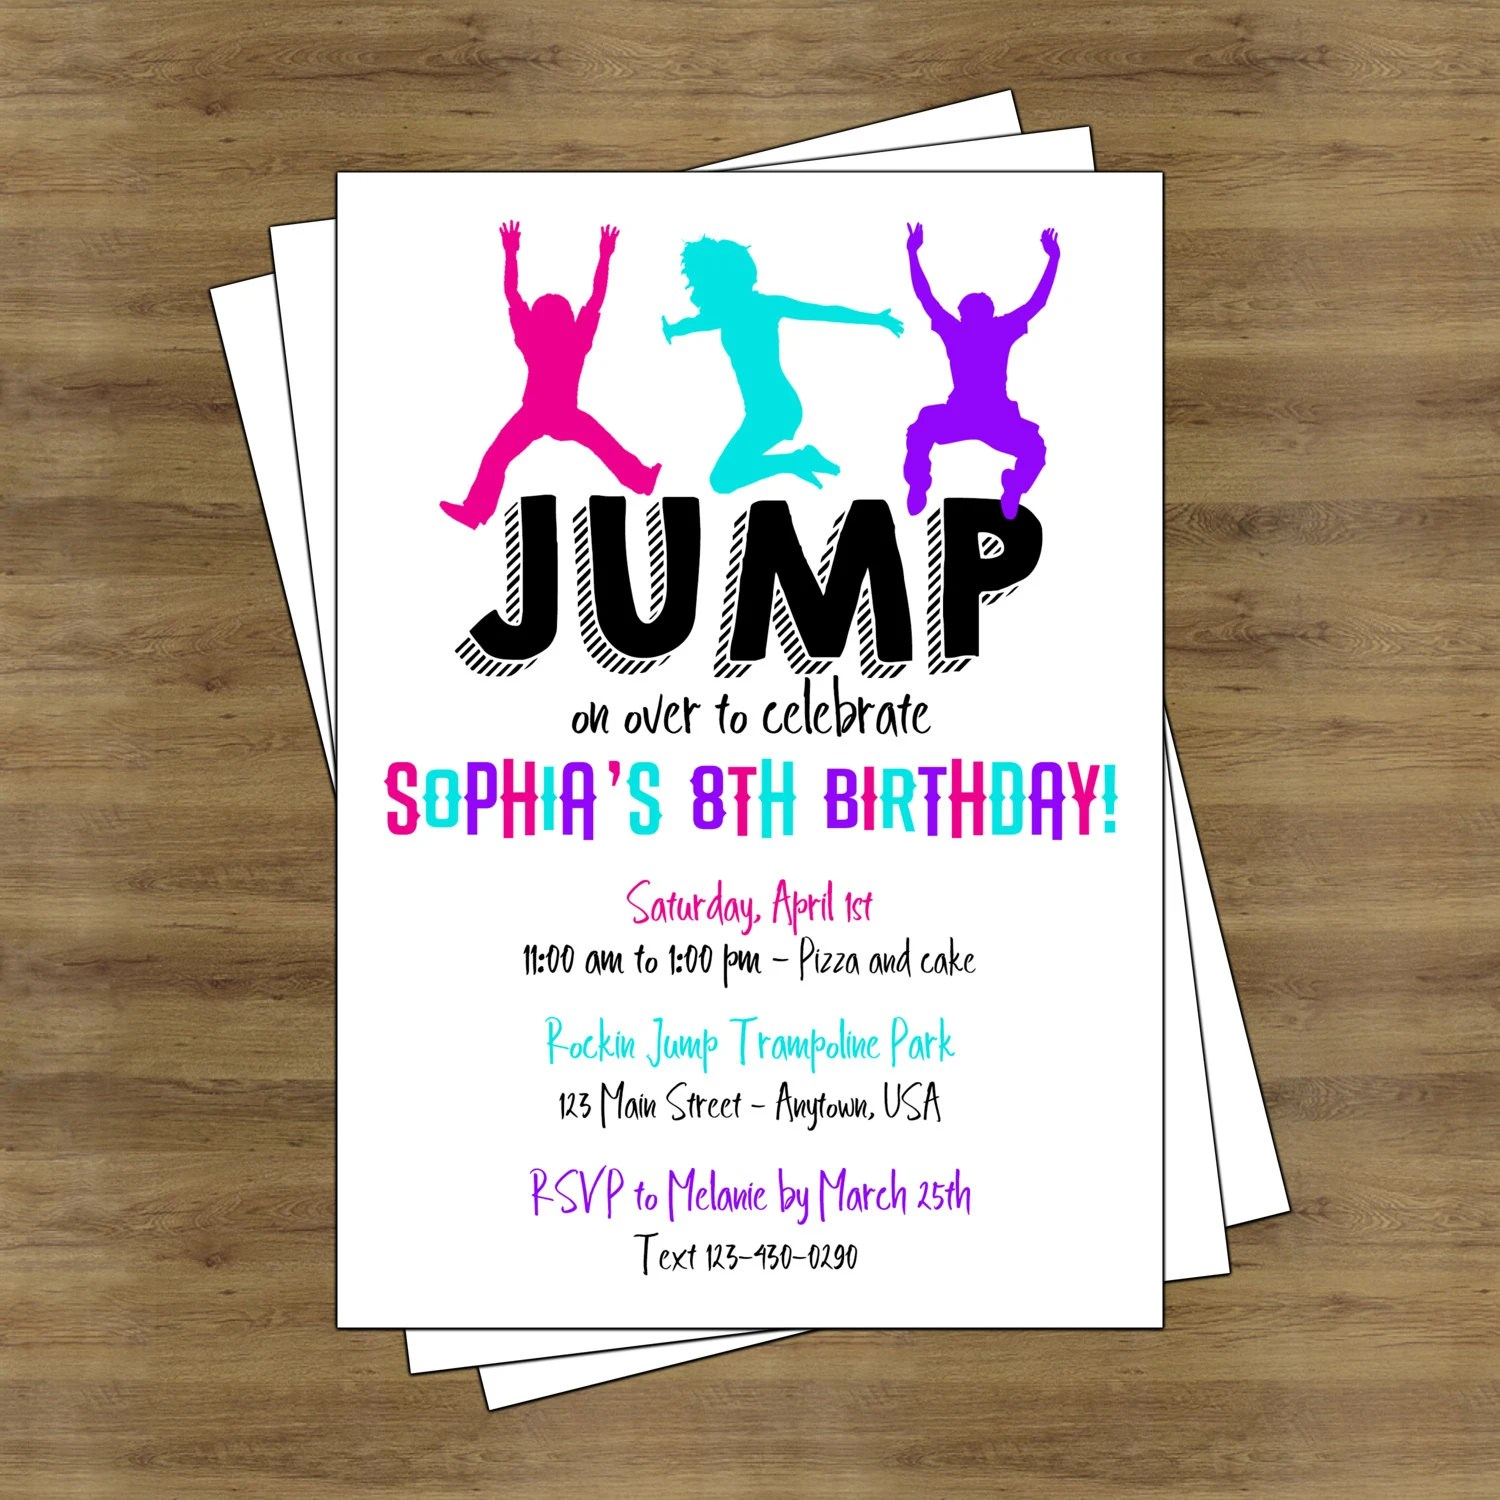 Create Party Invitations Online